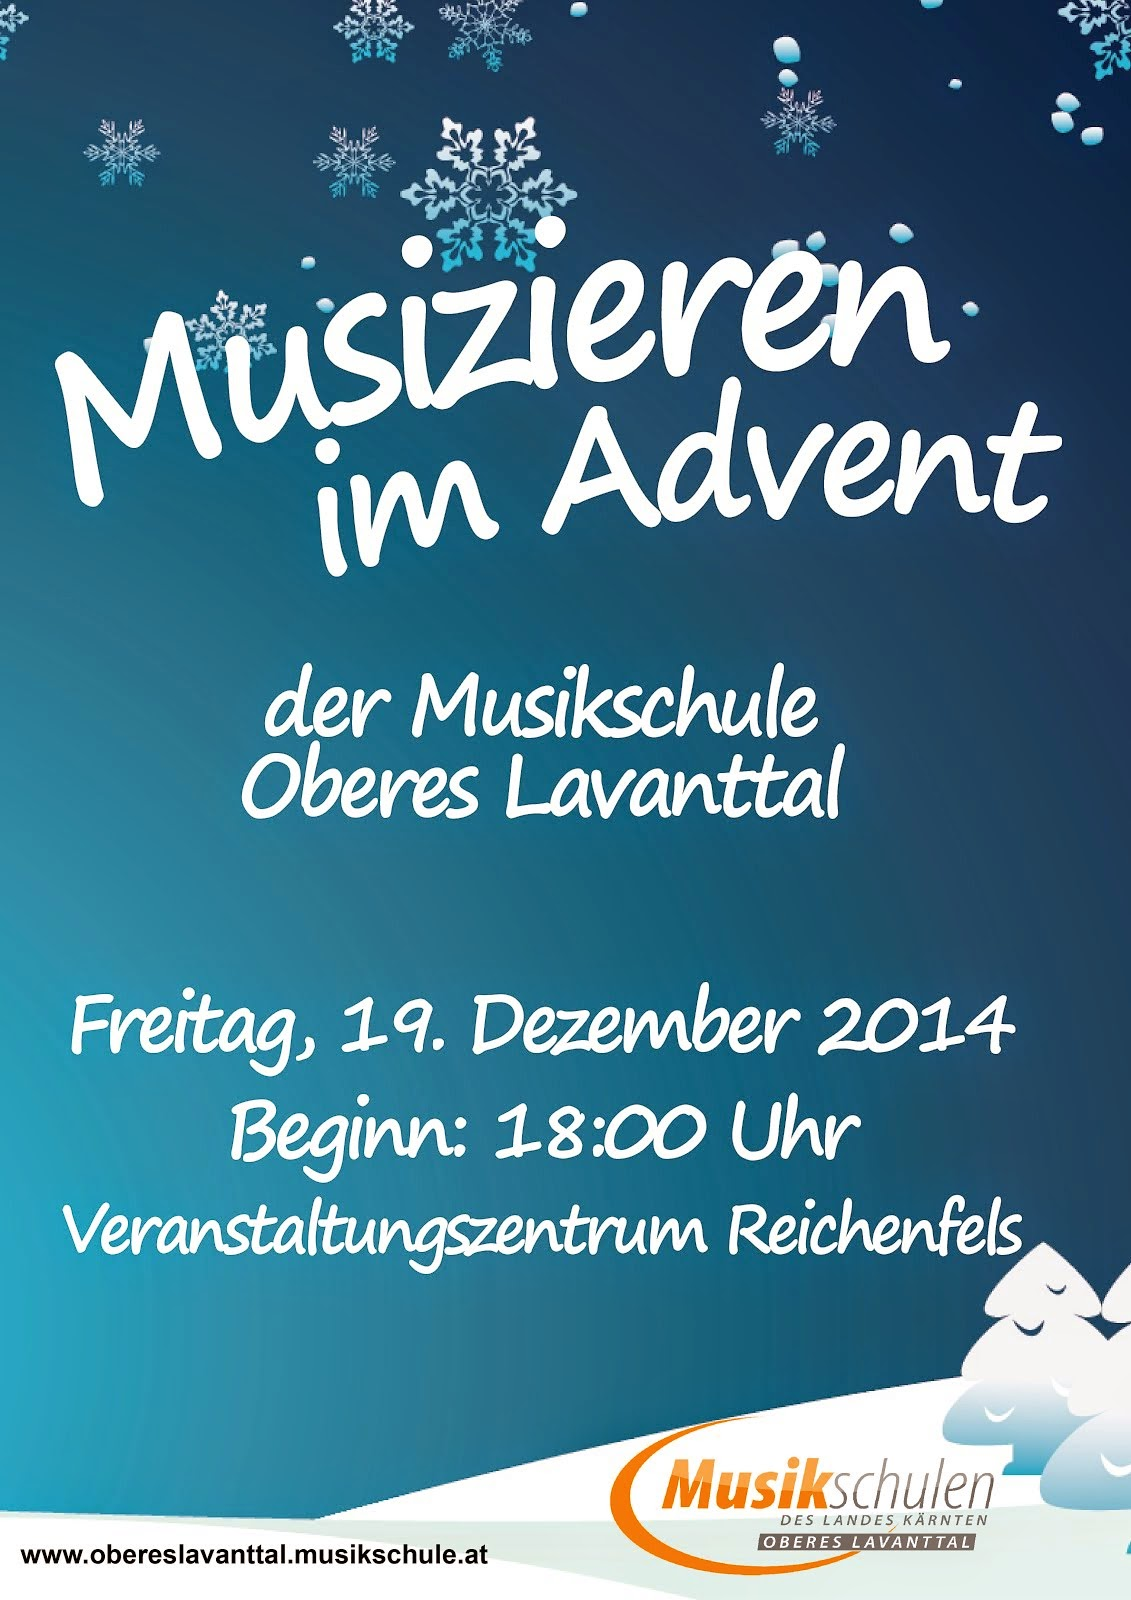 Musizieren im Advent